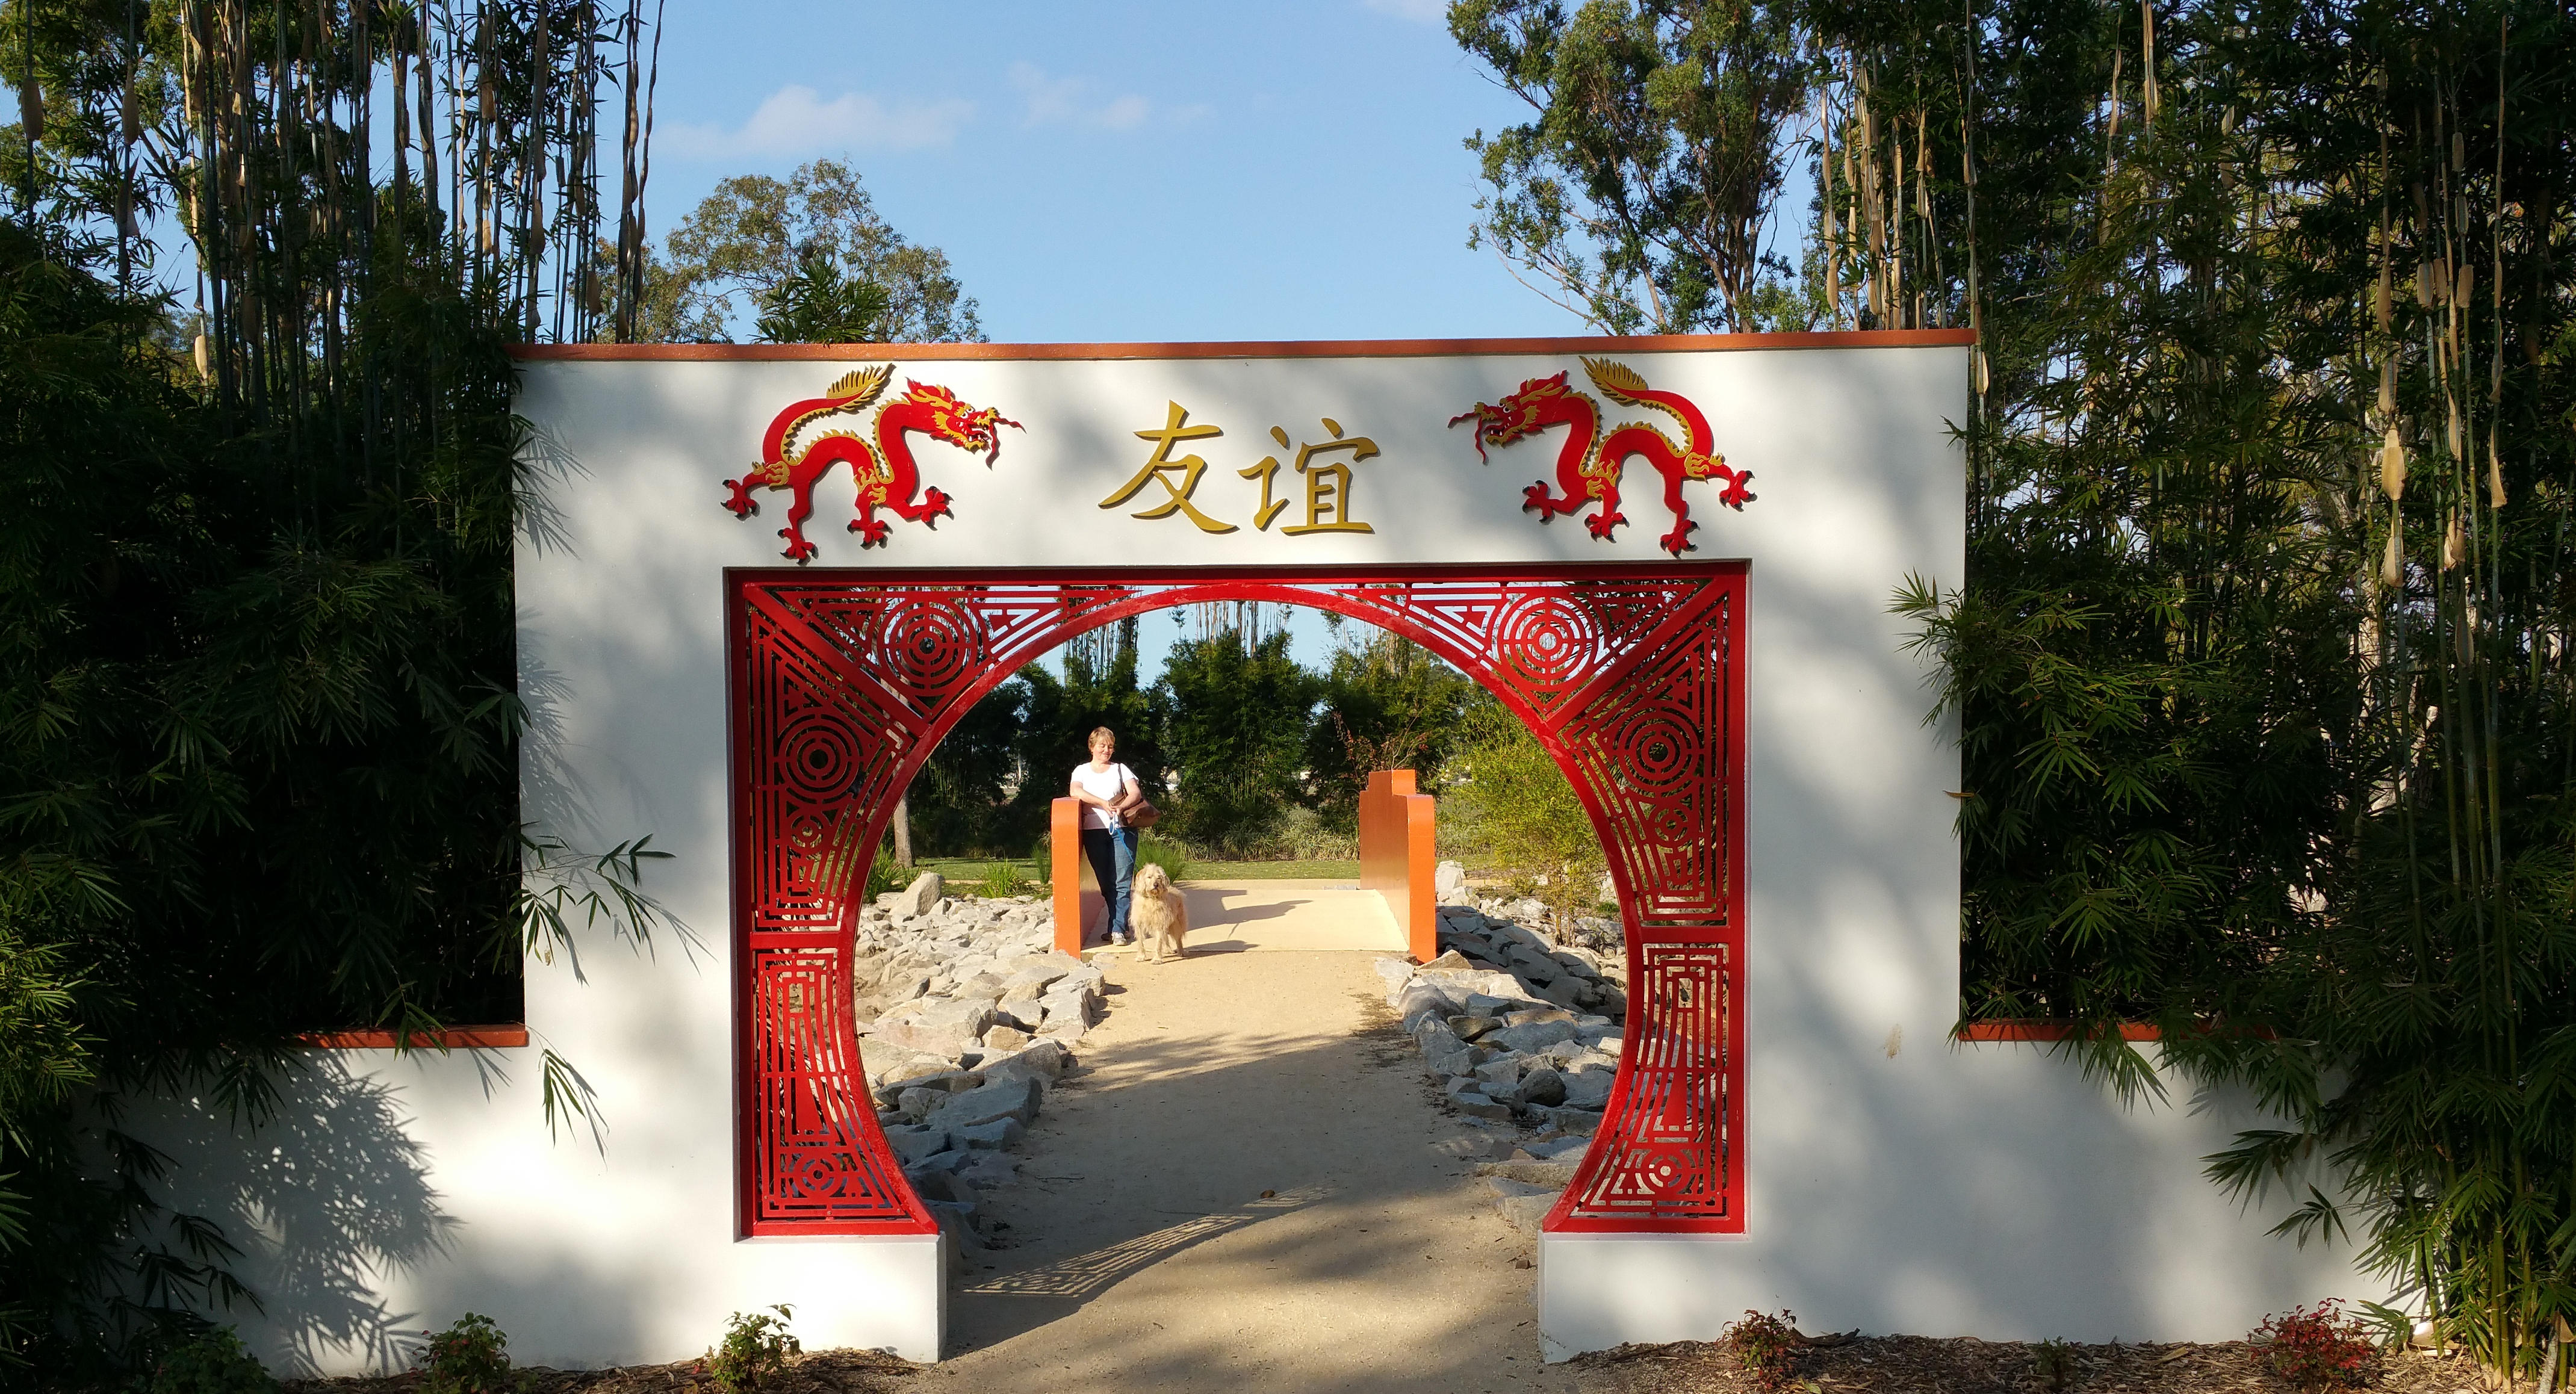 Entry to the Chinese Gardens in Bundaberg. I'll need to get Janet at work to translate